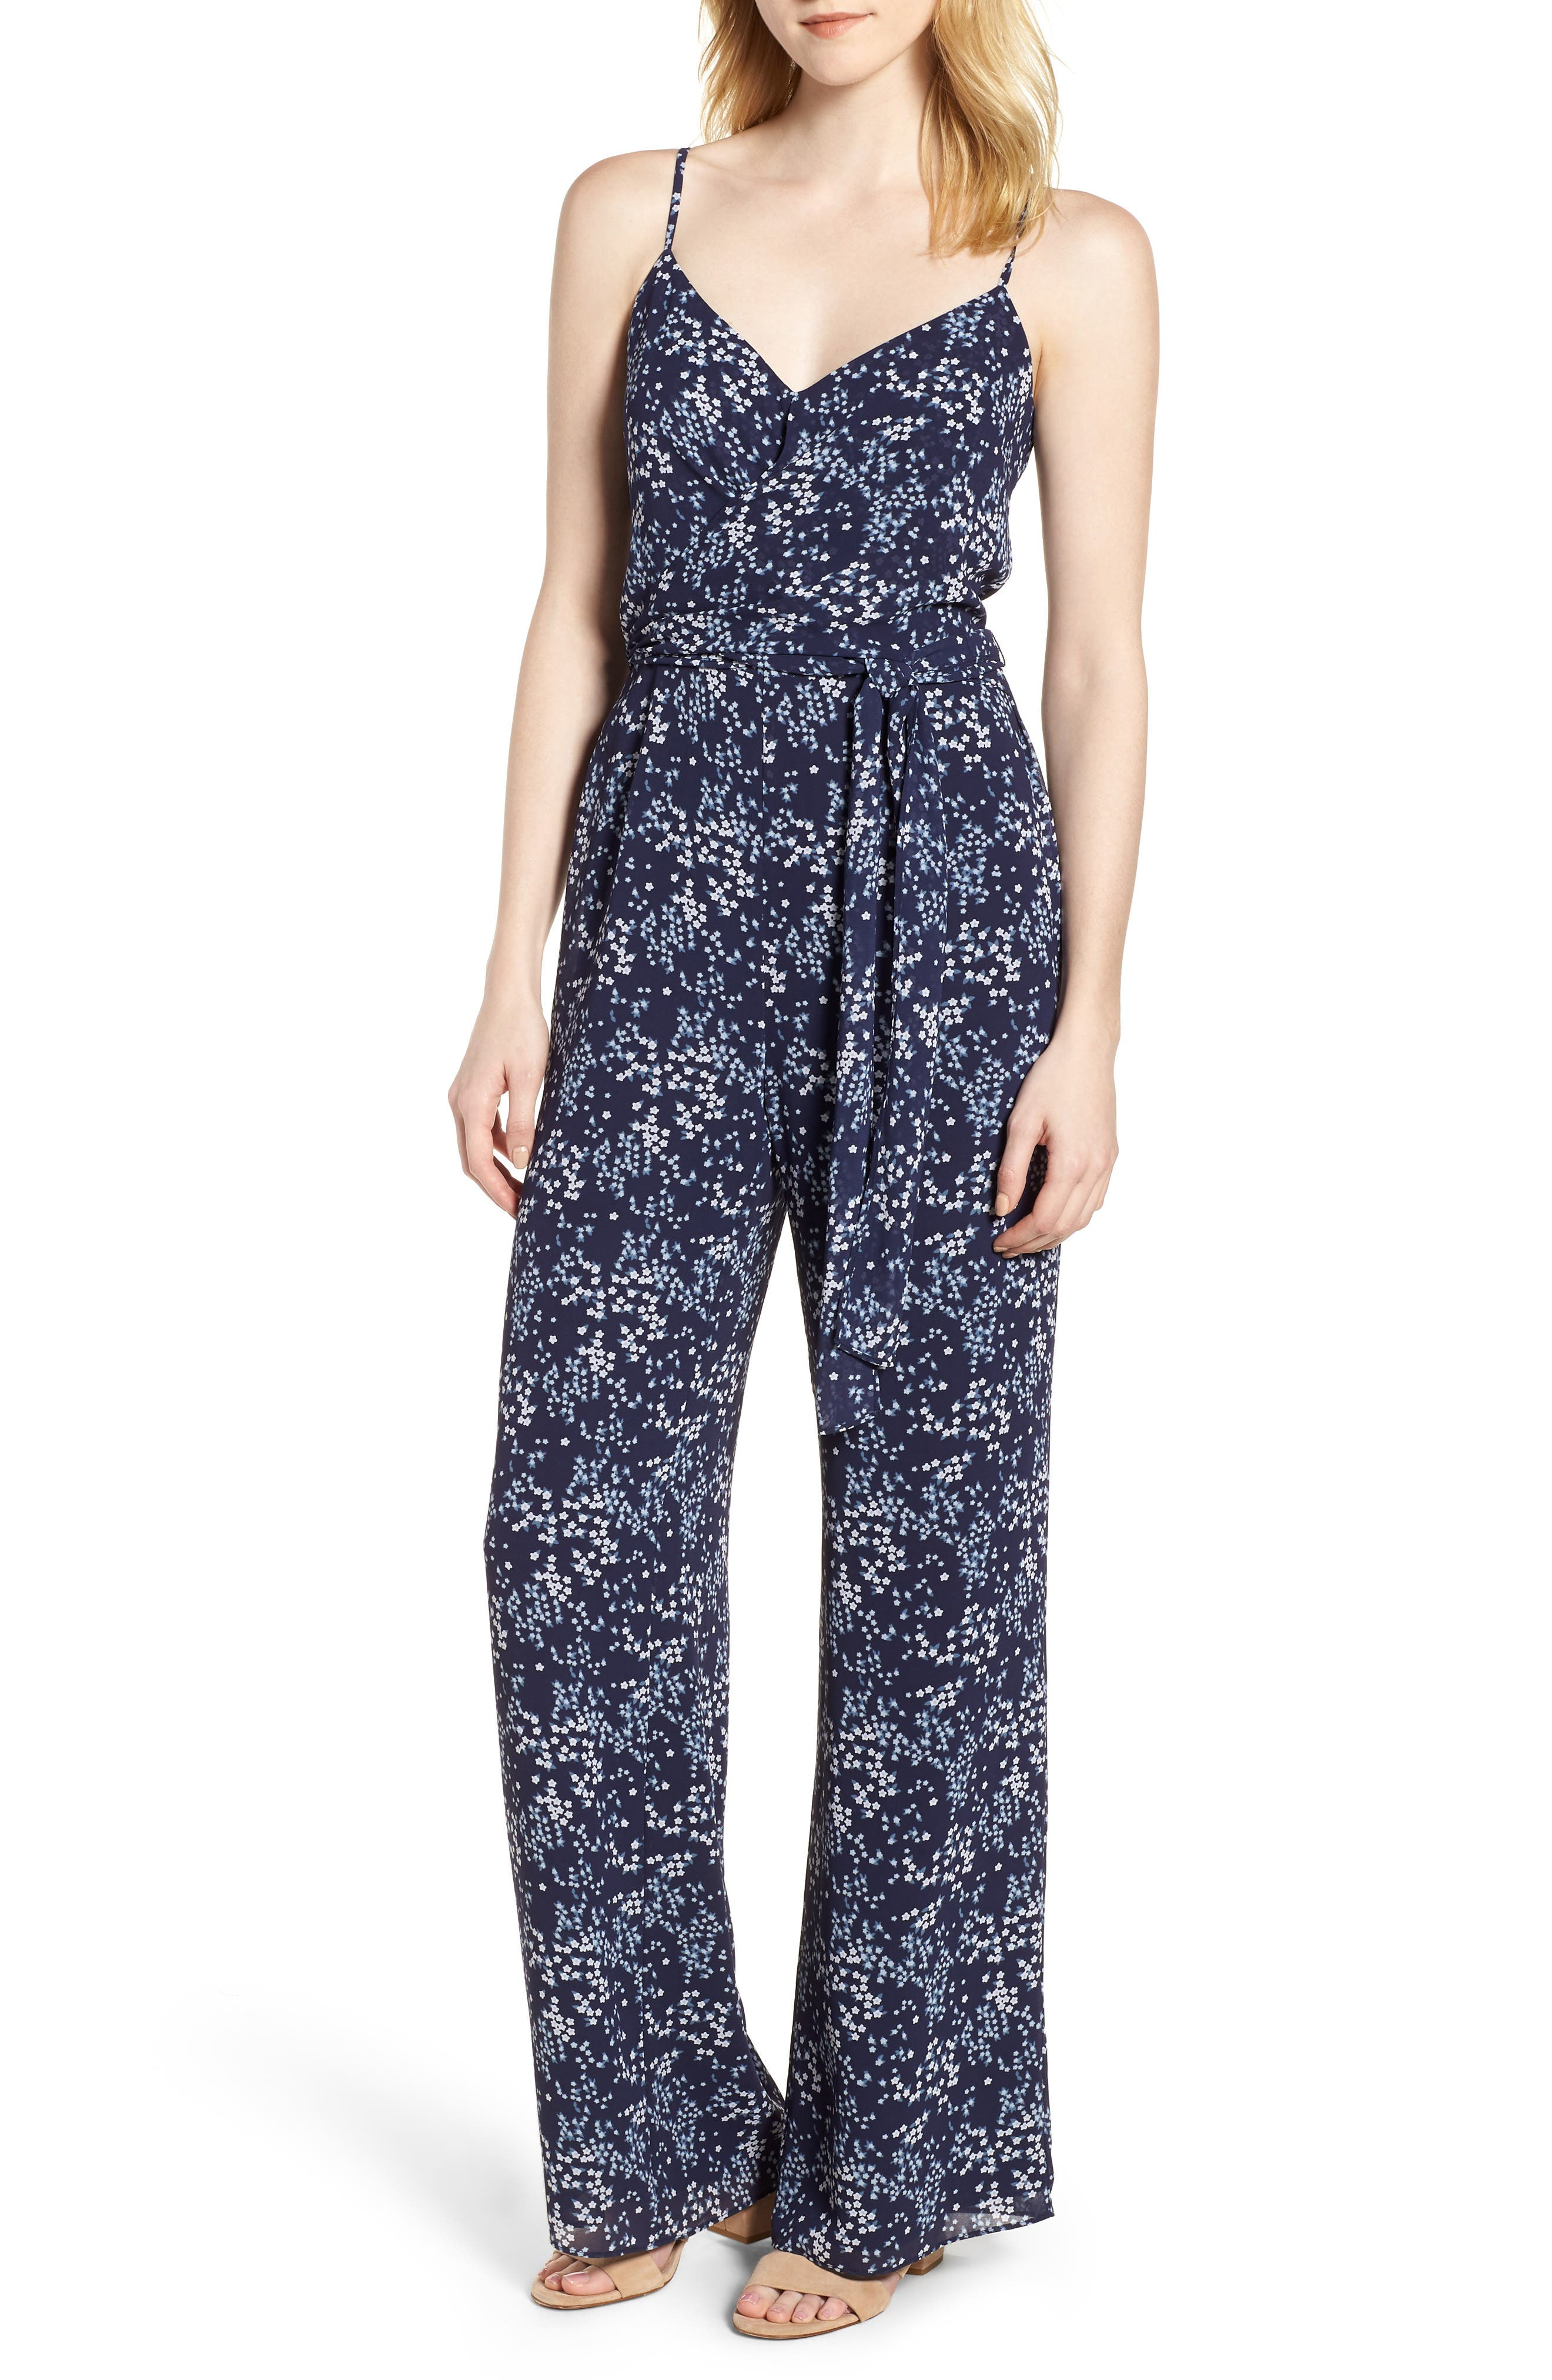 Scattered Blooms Jumpsuit,                         Main,                         color, True Navy/ Light Chambray